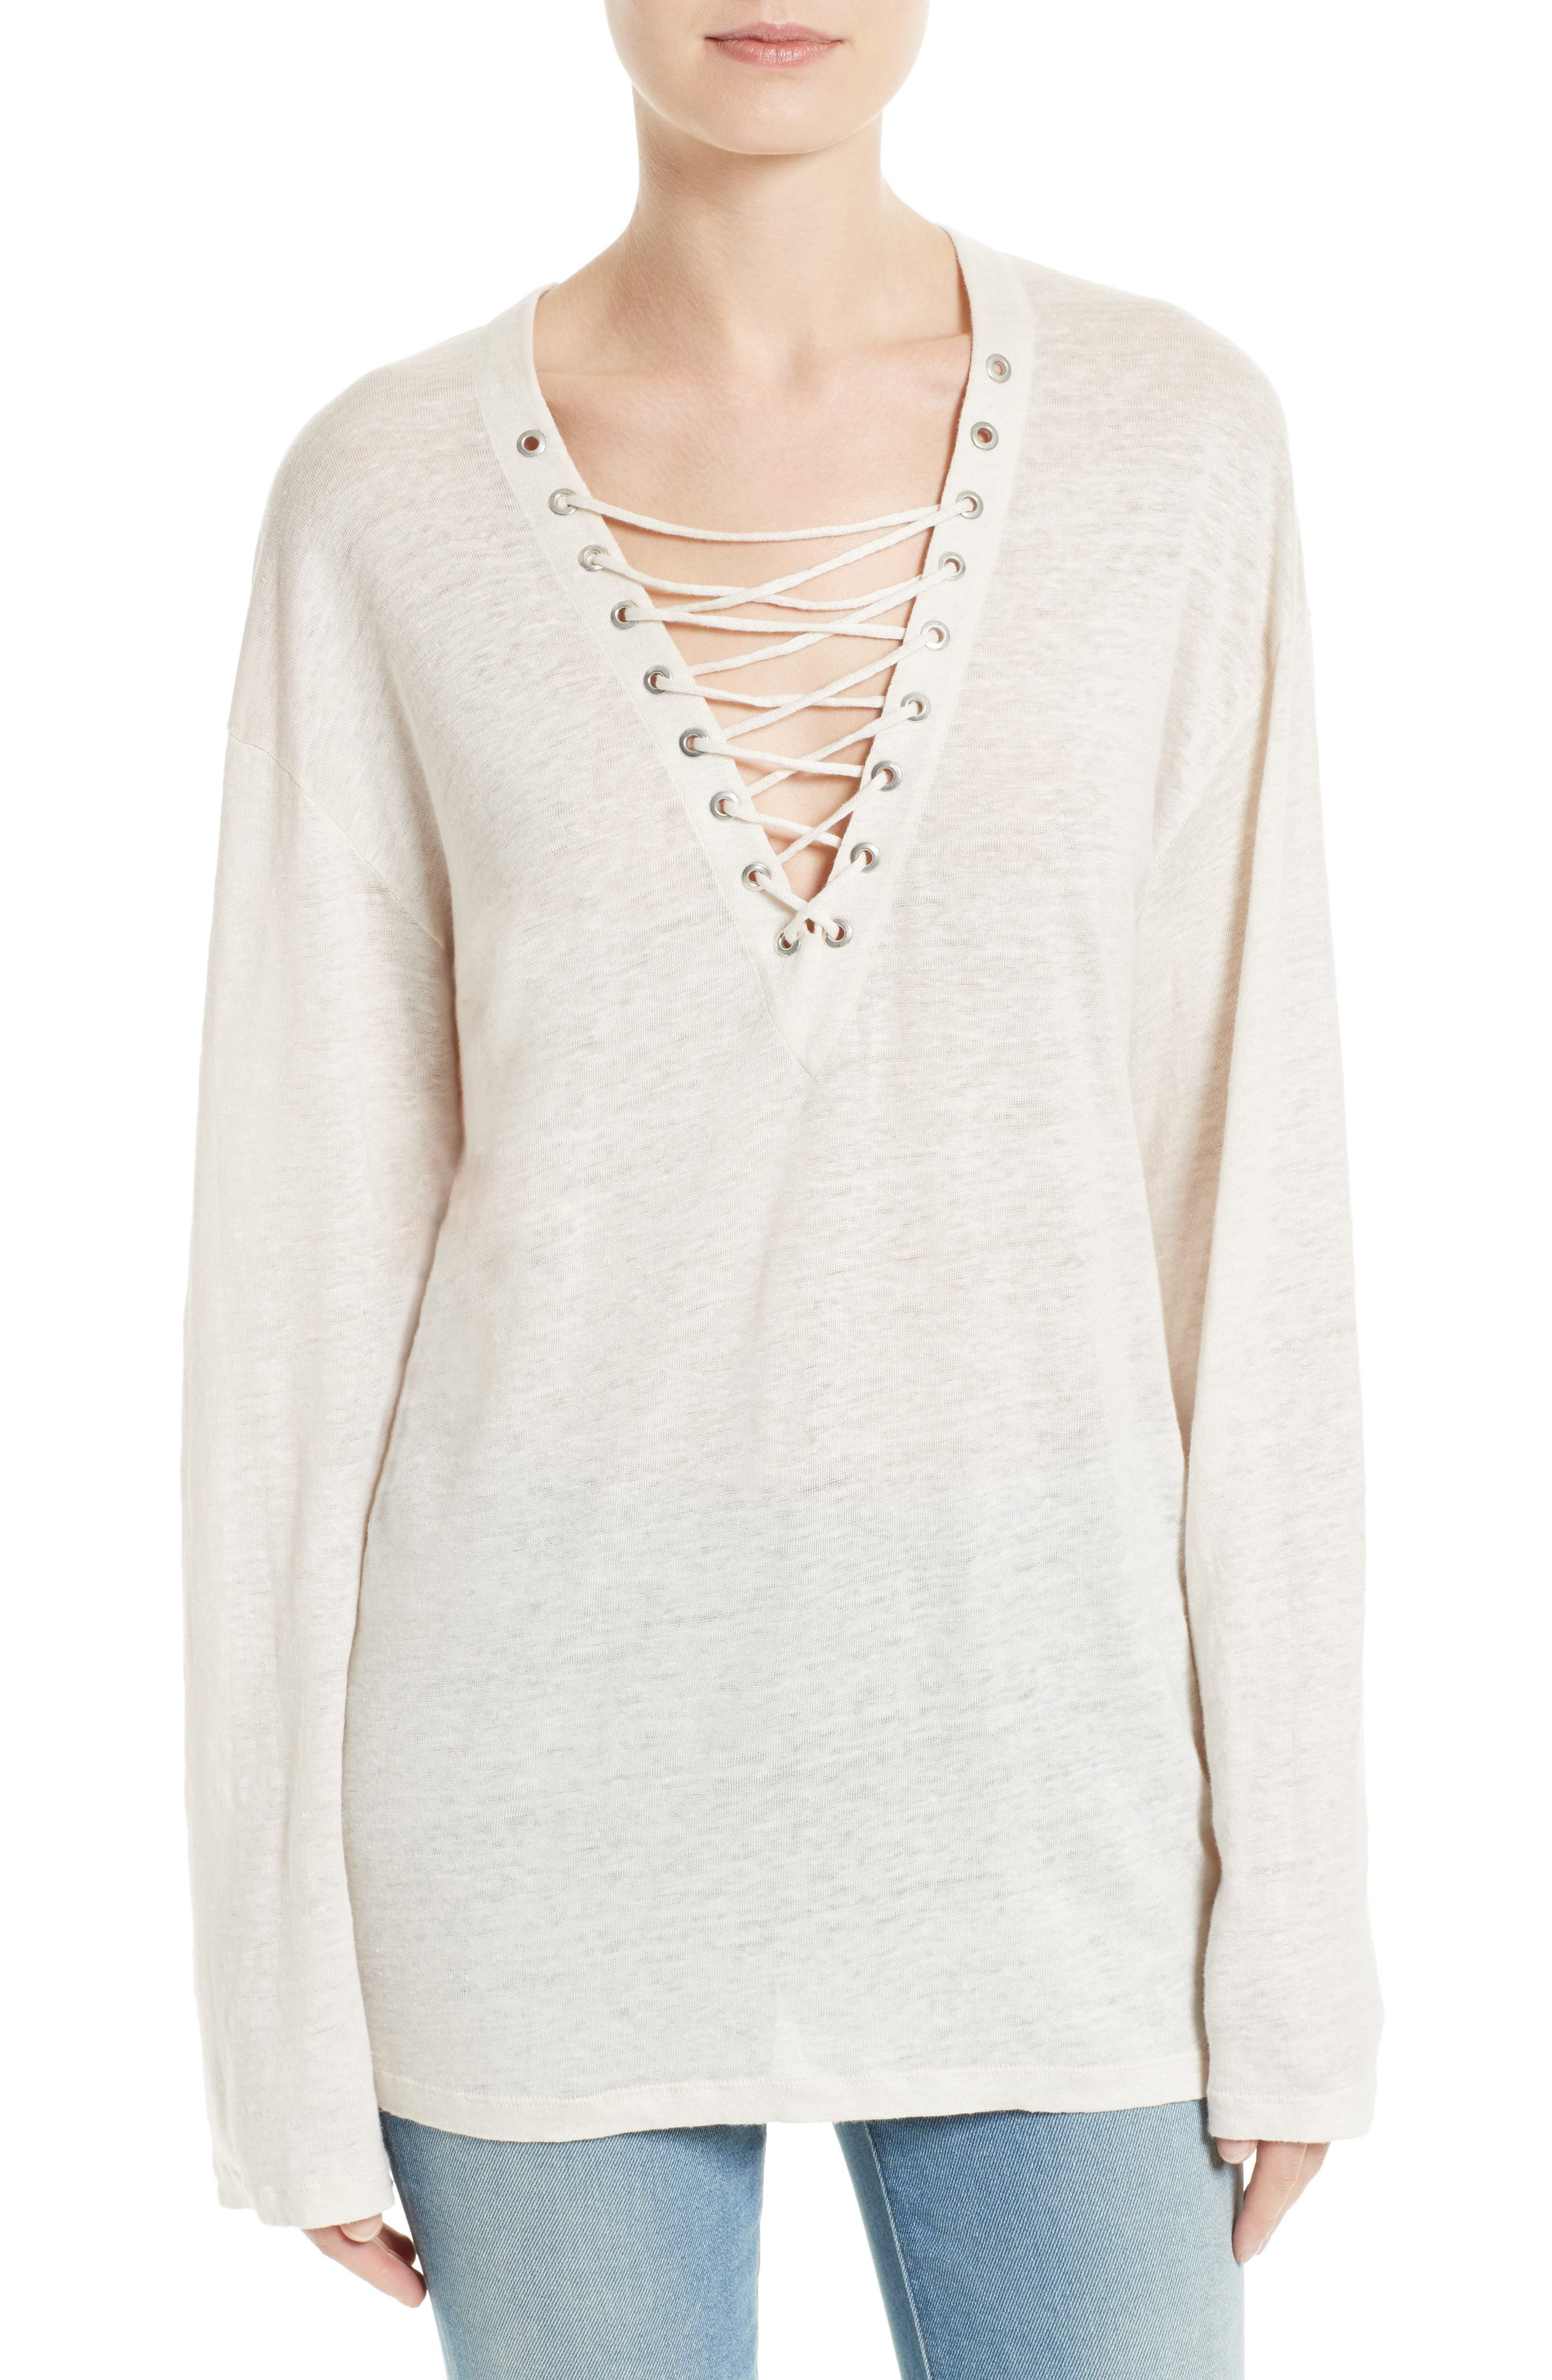 Alety Lace-Up Linen Top,                             Main thumbnail 1, color,                             Ivory